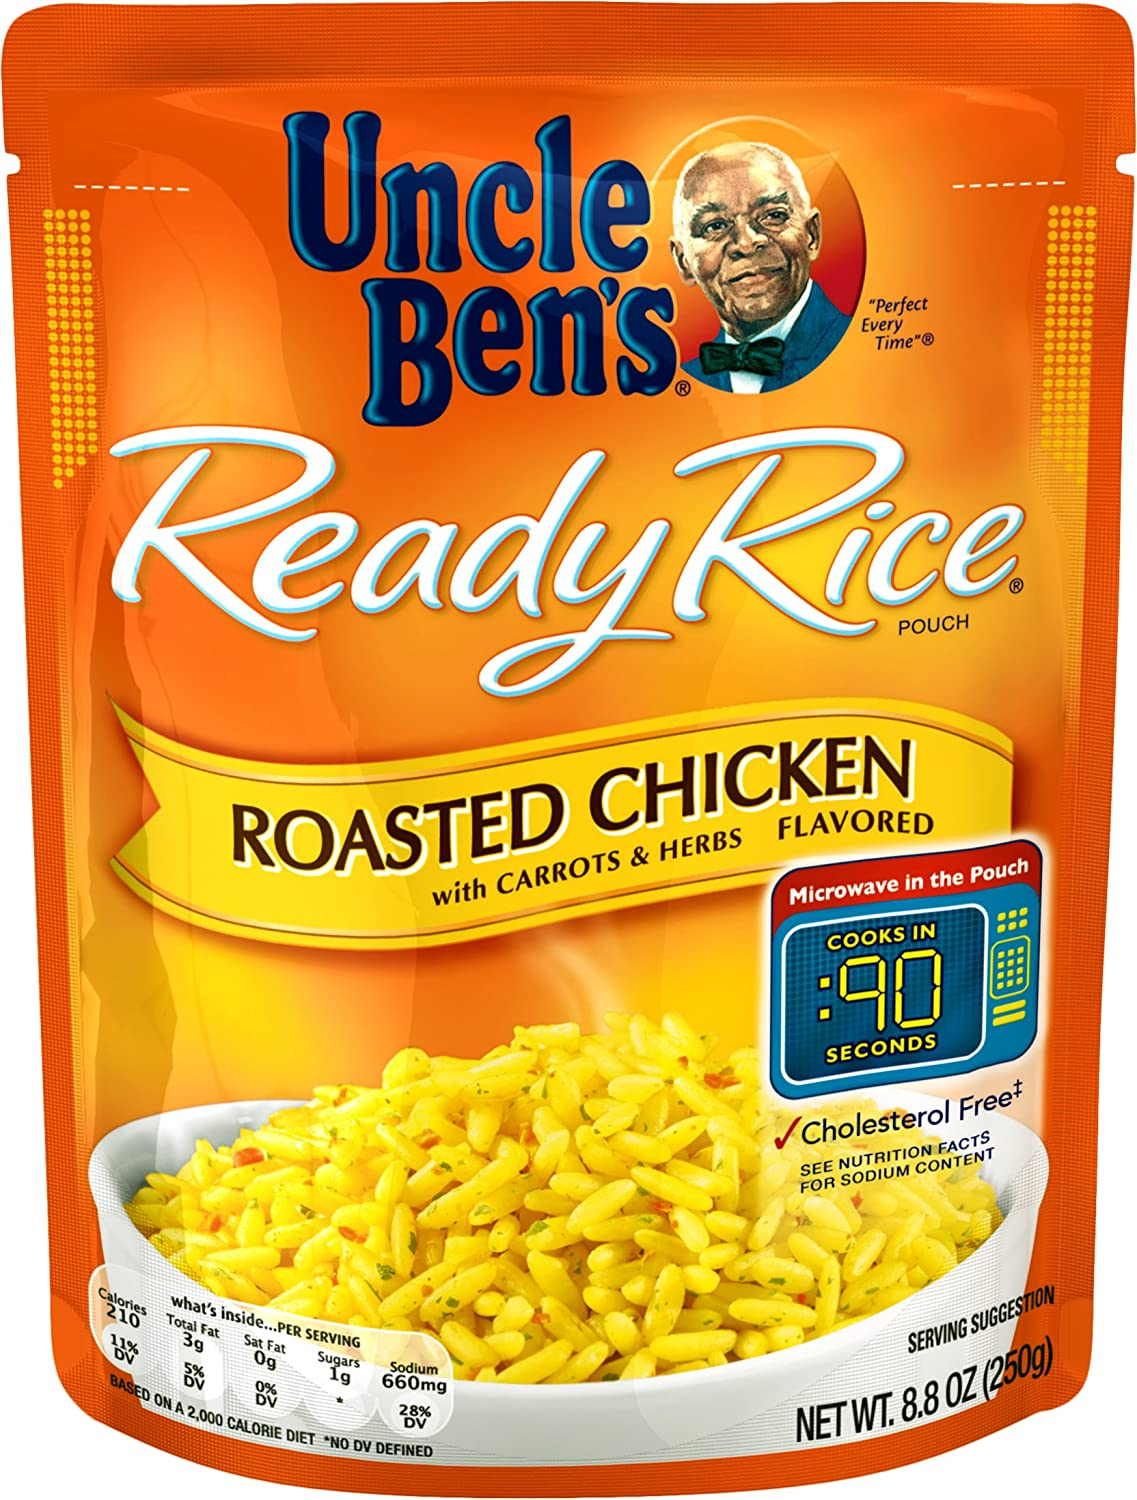 UNCLE BEN'S Ready Rice: Roasted Chicken Flavor (12pk)